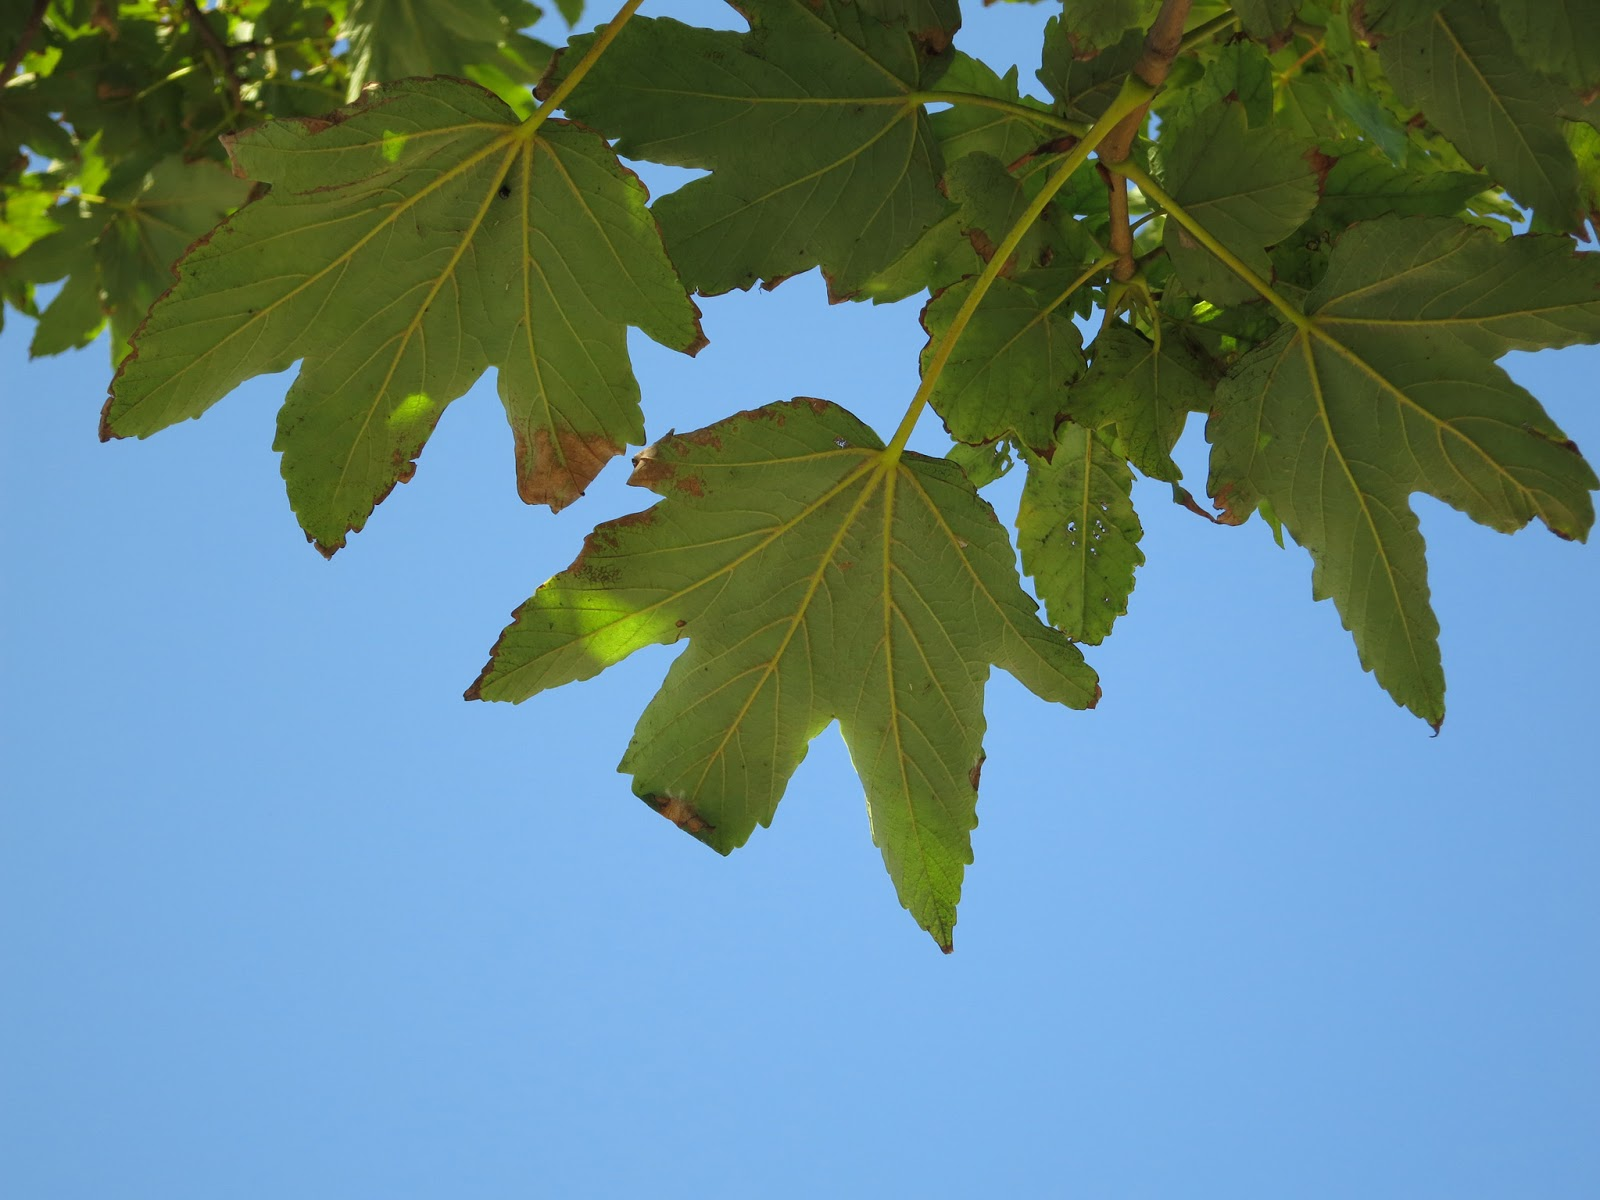 Leaves from below in front of a bright blue sky.